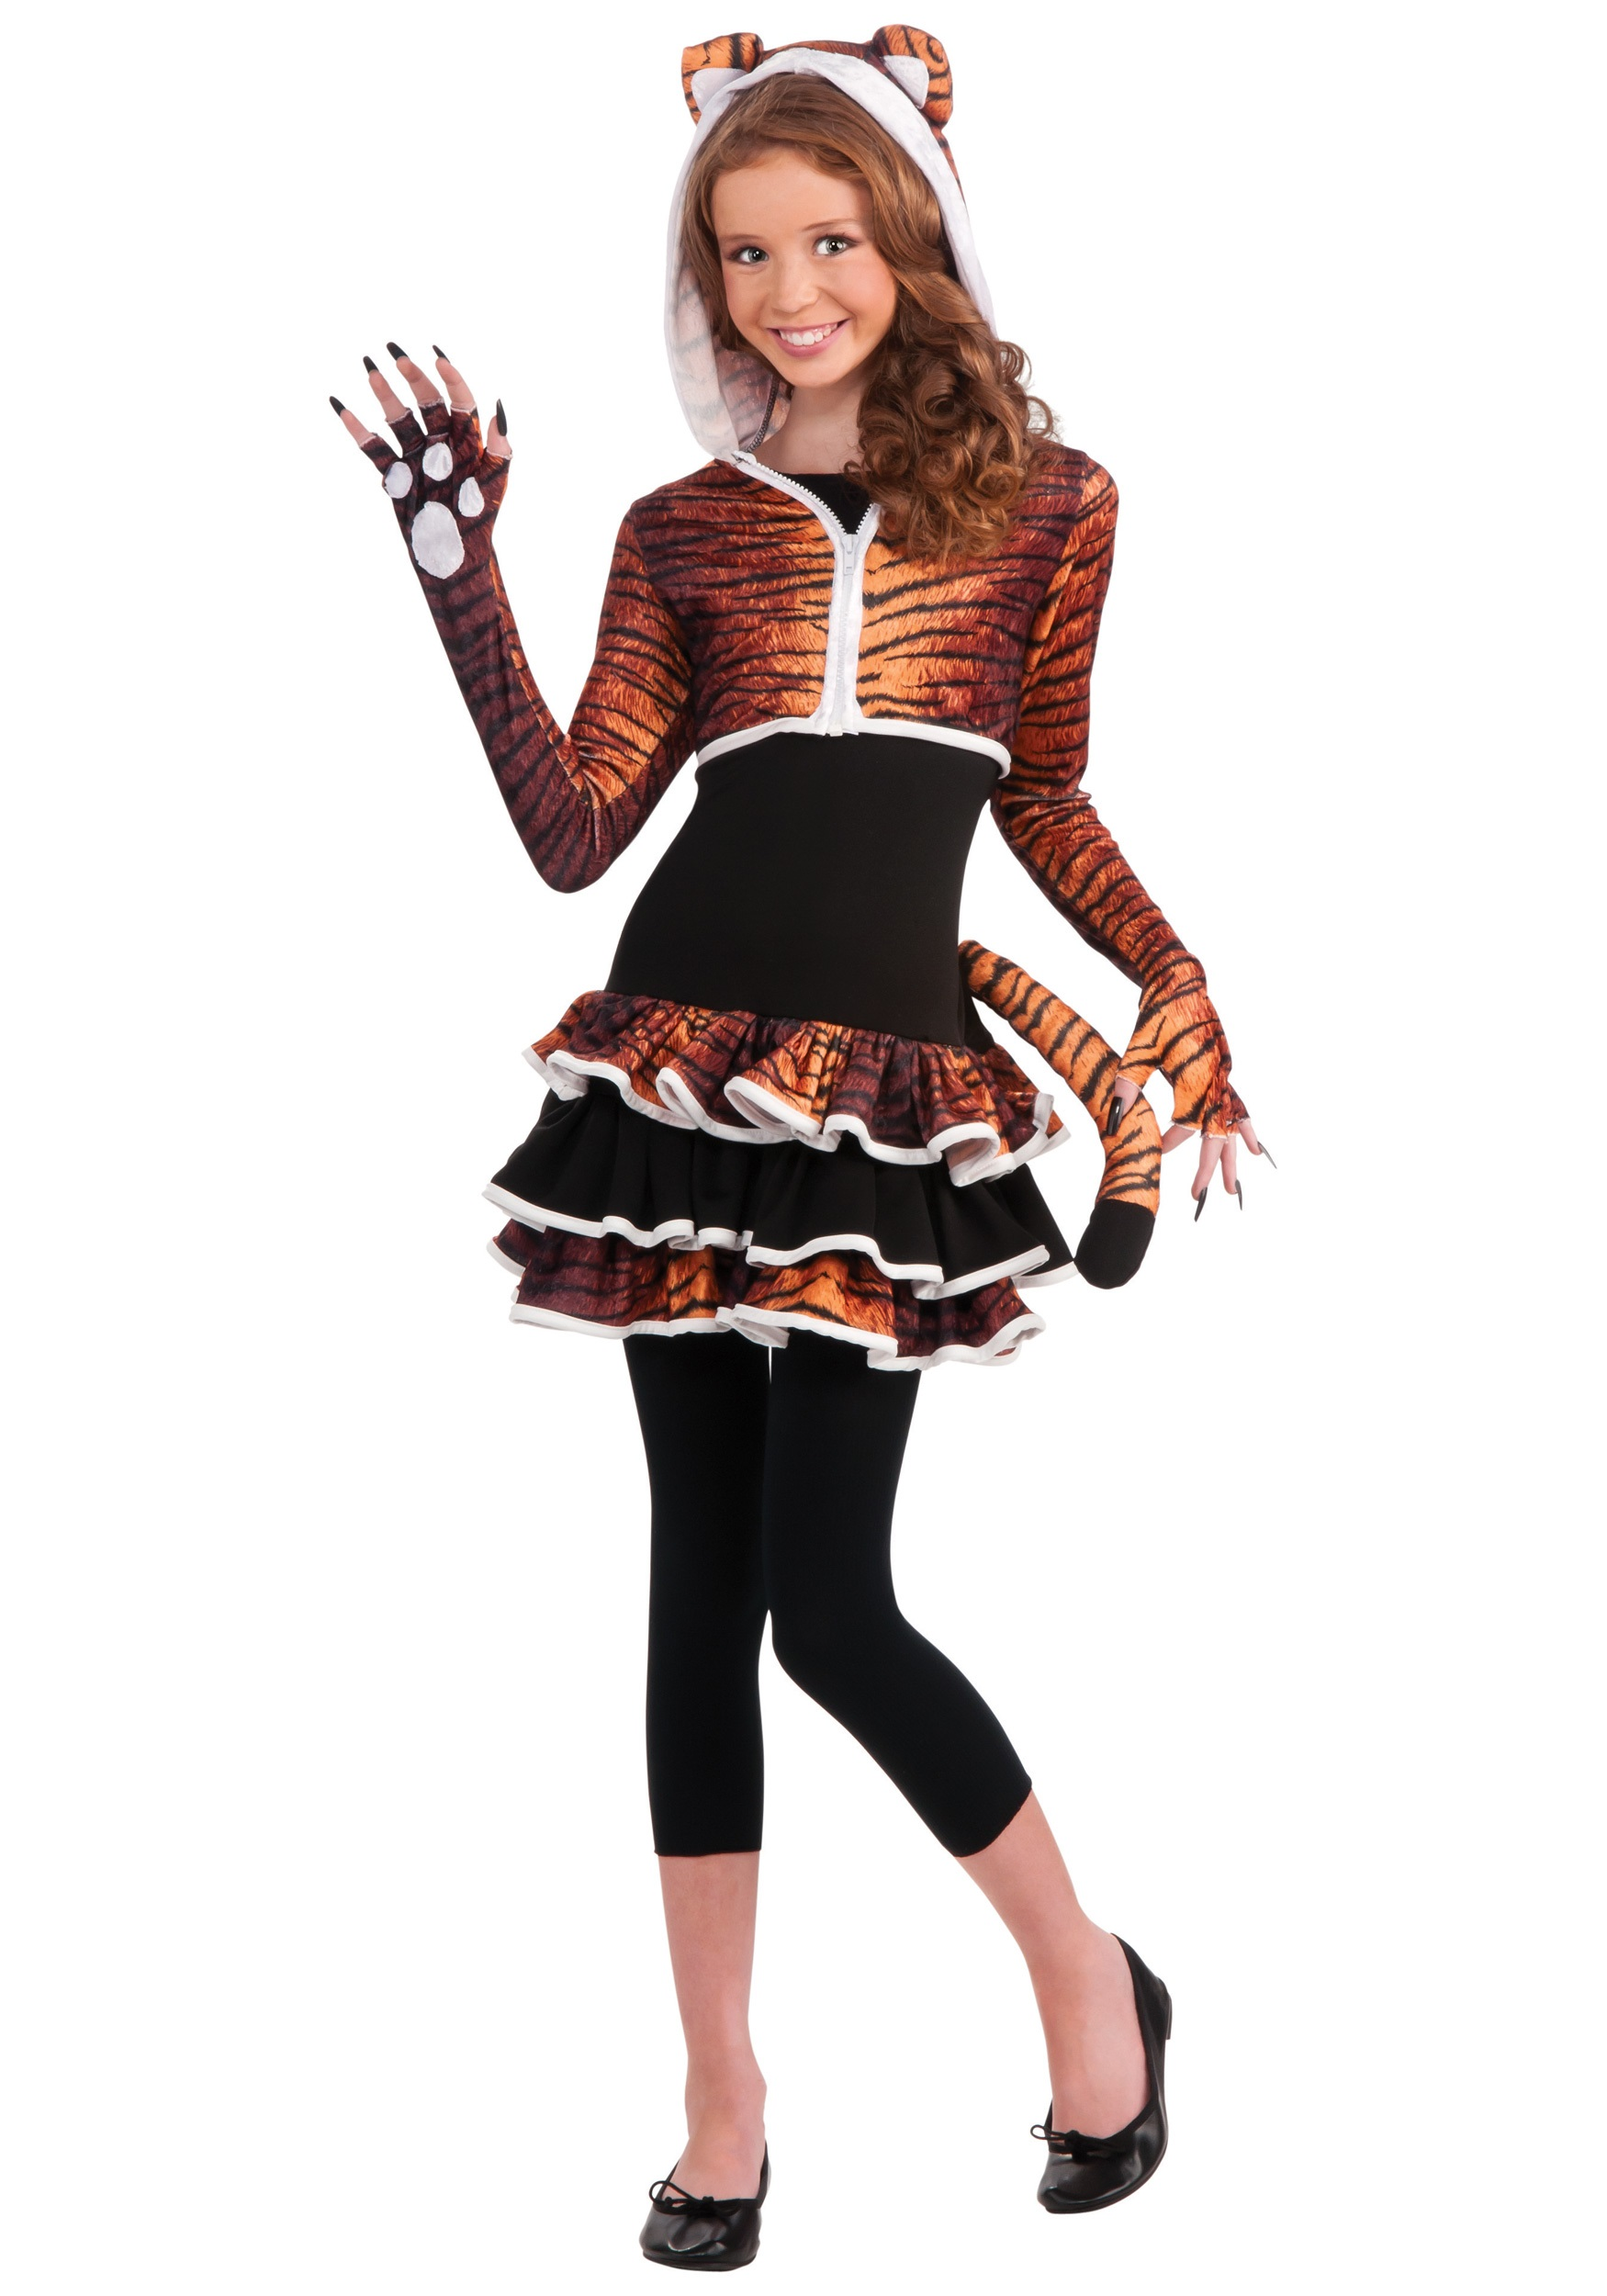 sc 1 st  Halloween Costumes : costumes for tweens  - Germanpascual.Com